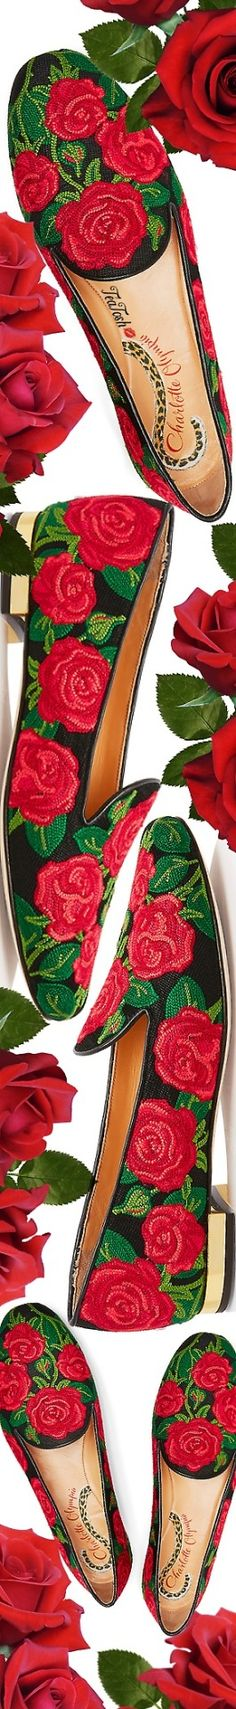 ❈Téa Tosh❈ Charlotte Olympia, Rose slipper #CharlotteOlympia #teatosh Flower Quotes, Rose Cottage, Old Hollywood Glamour, Floral Fashion, Flower Delivery, Shades Of Red, Charlotte Olympia, Red Green, Fashion Boots